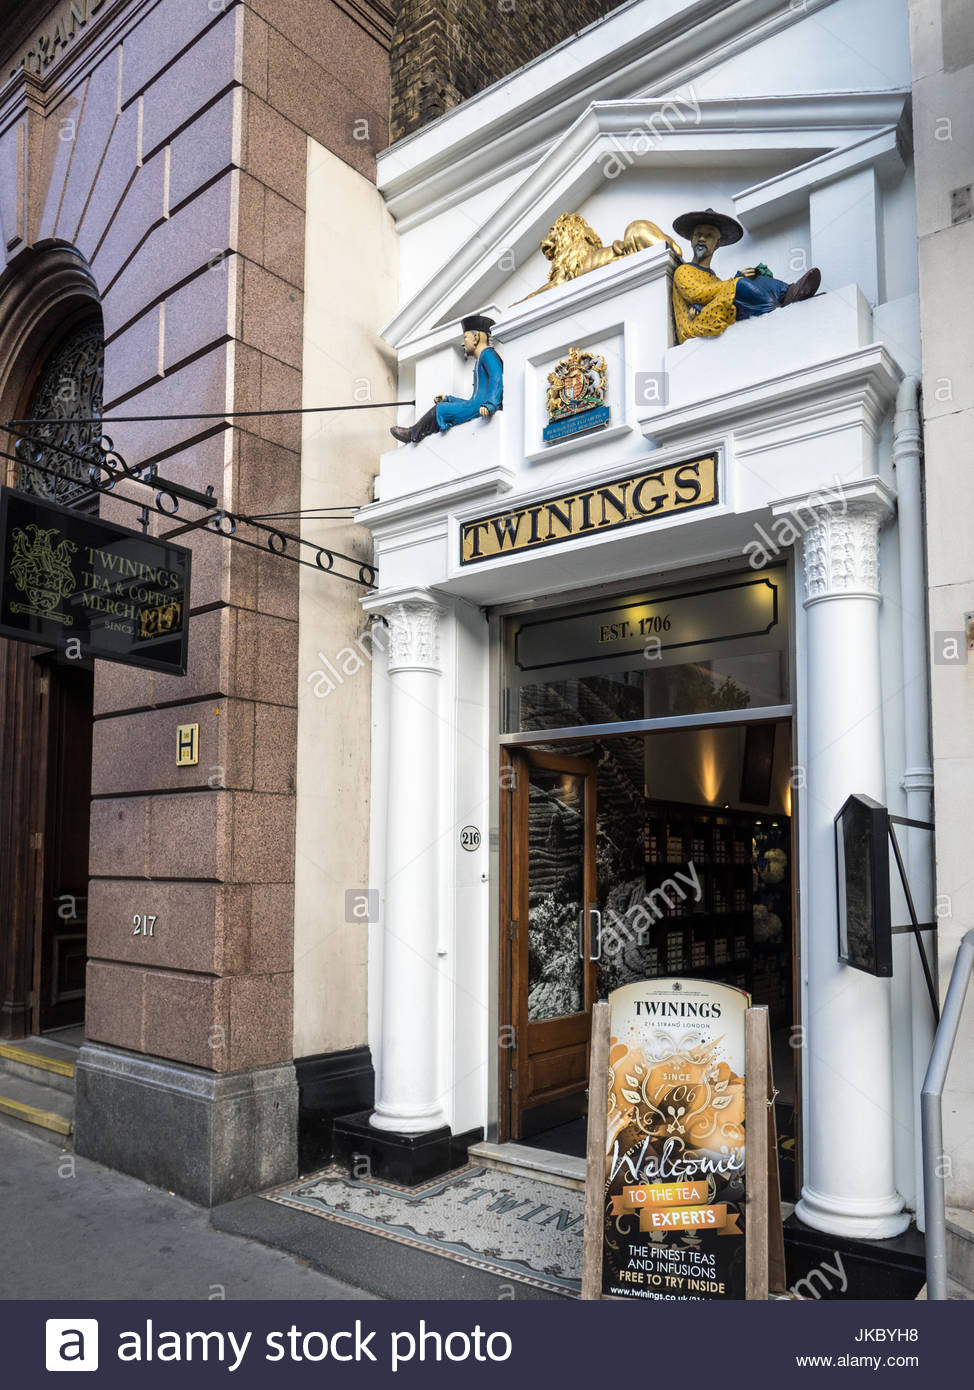 9e6e623a69 Twinings Tea historic tea store at 216 The Strand London - The oldest tea  shop in London at over 300 years old